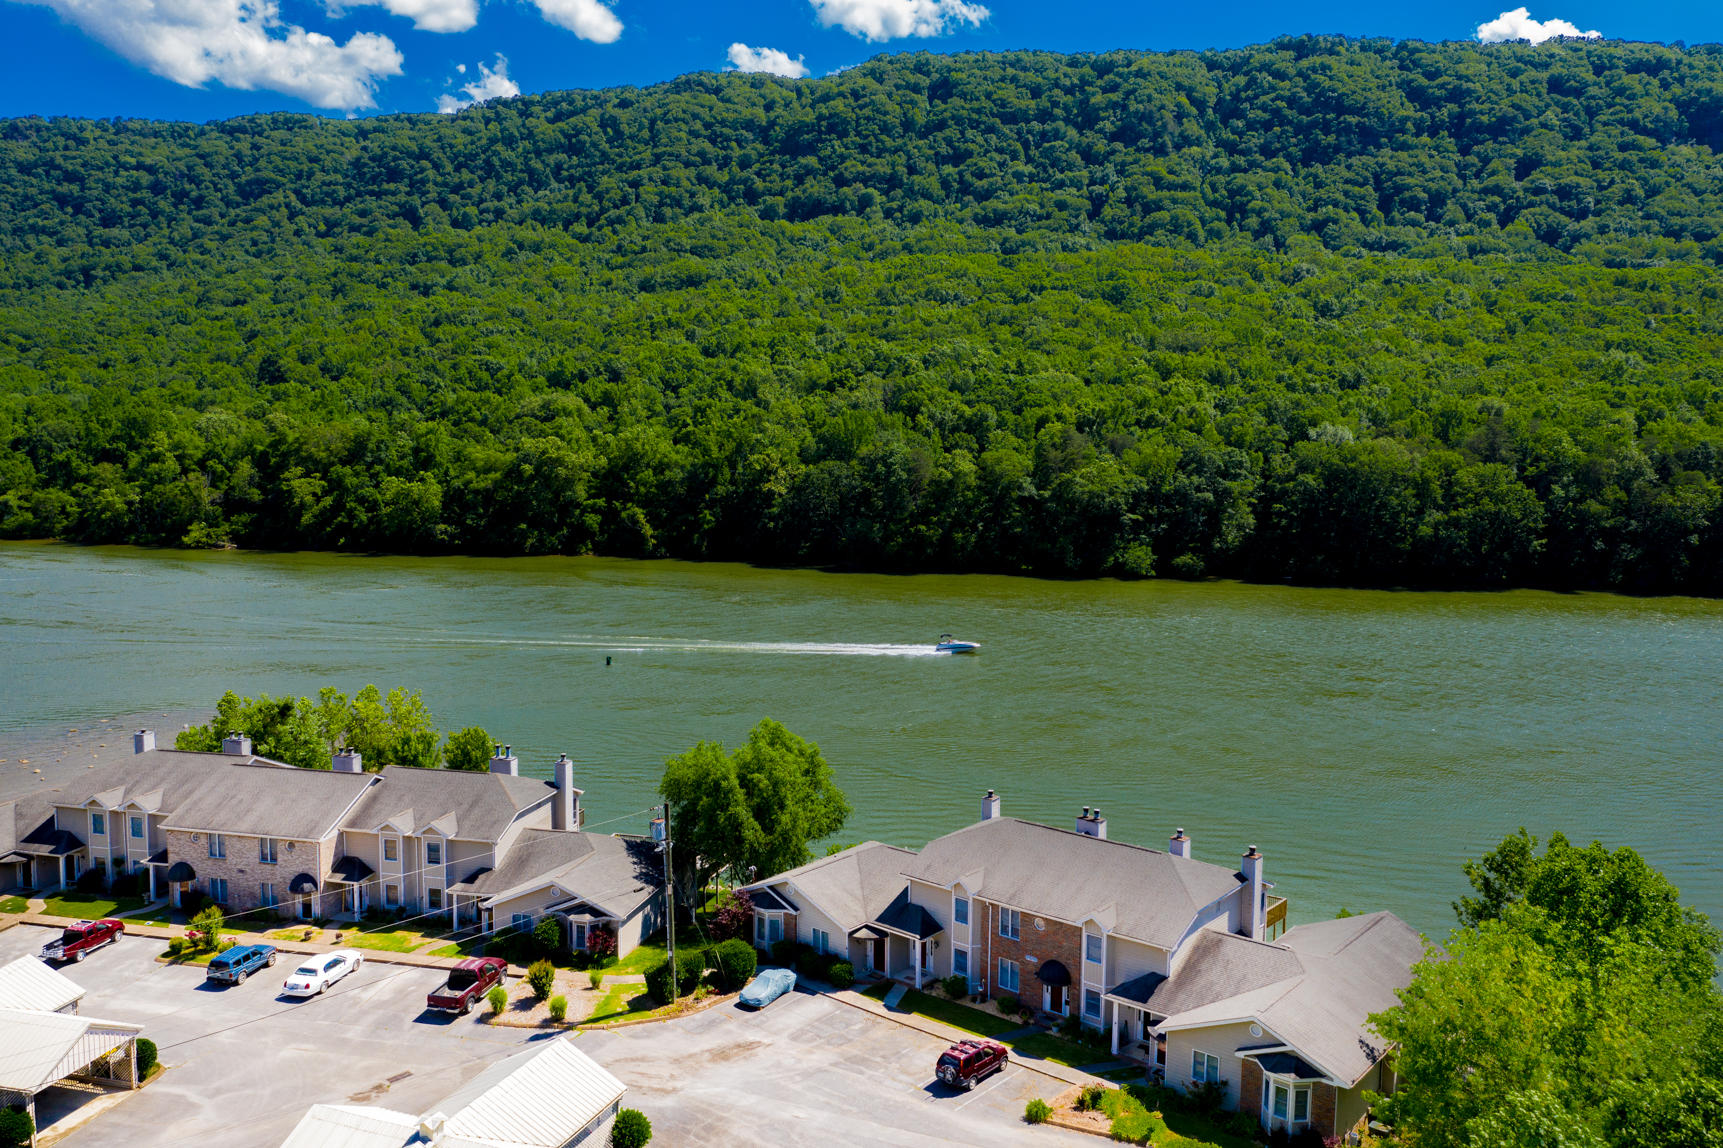 21926  River Canyon 502 Rd, Chattanooga, Tennessee